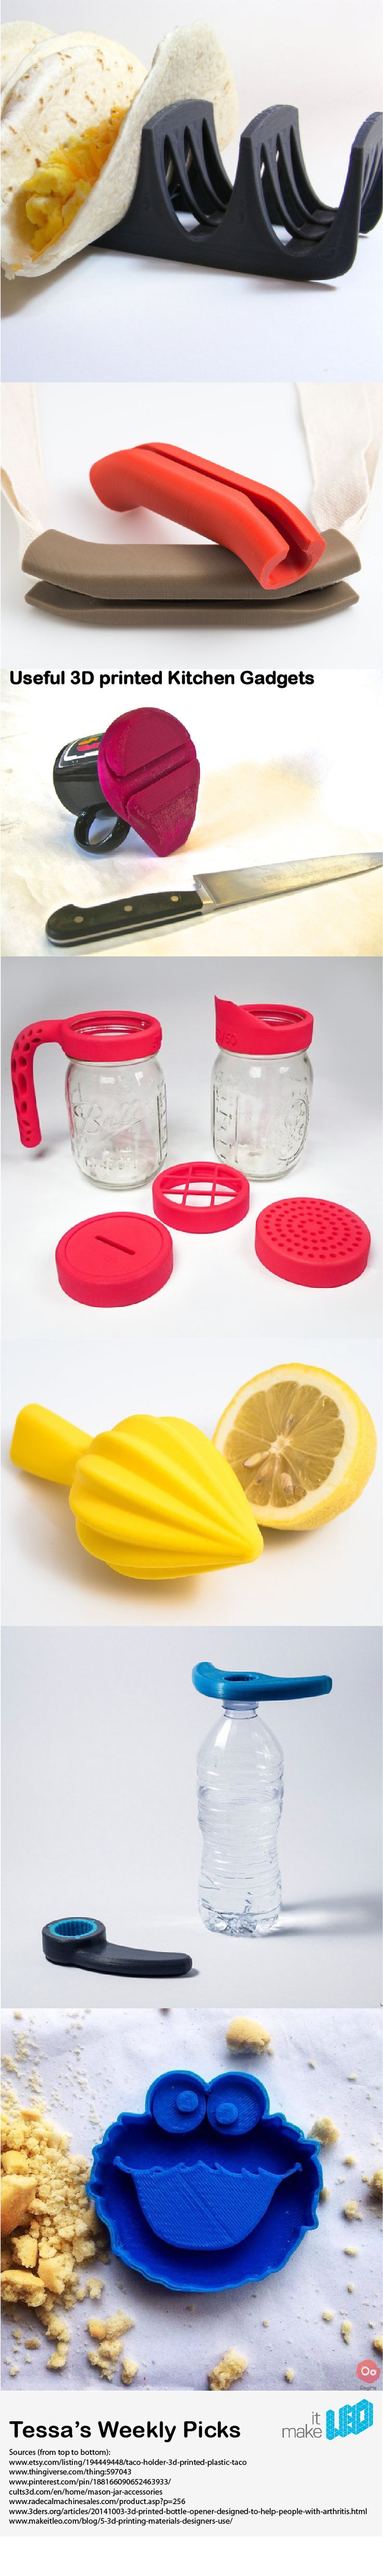 Useful 3D Printed Kitchen Gadgets - Tessa's Weekly Picks - Make it LEO